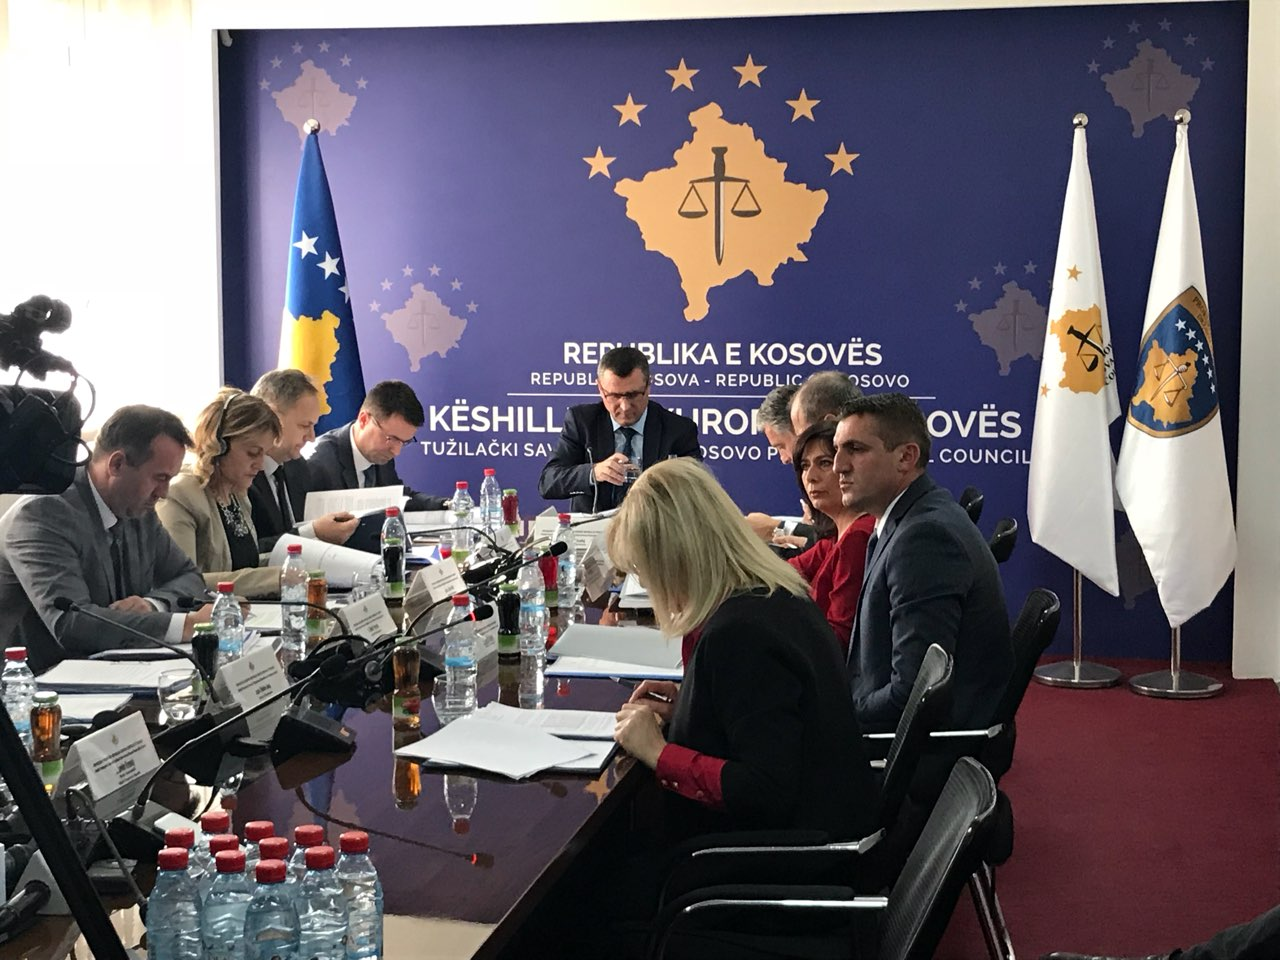 Corruption continues to remain a challenge for Kosovo's institutions